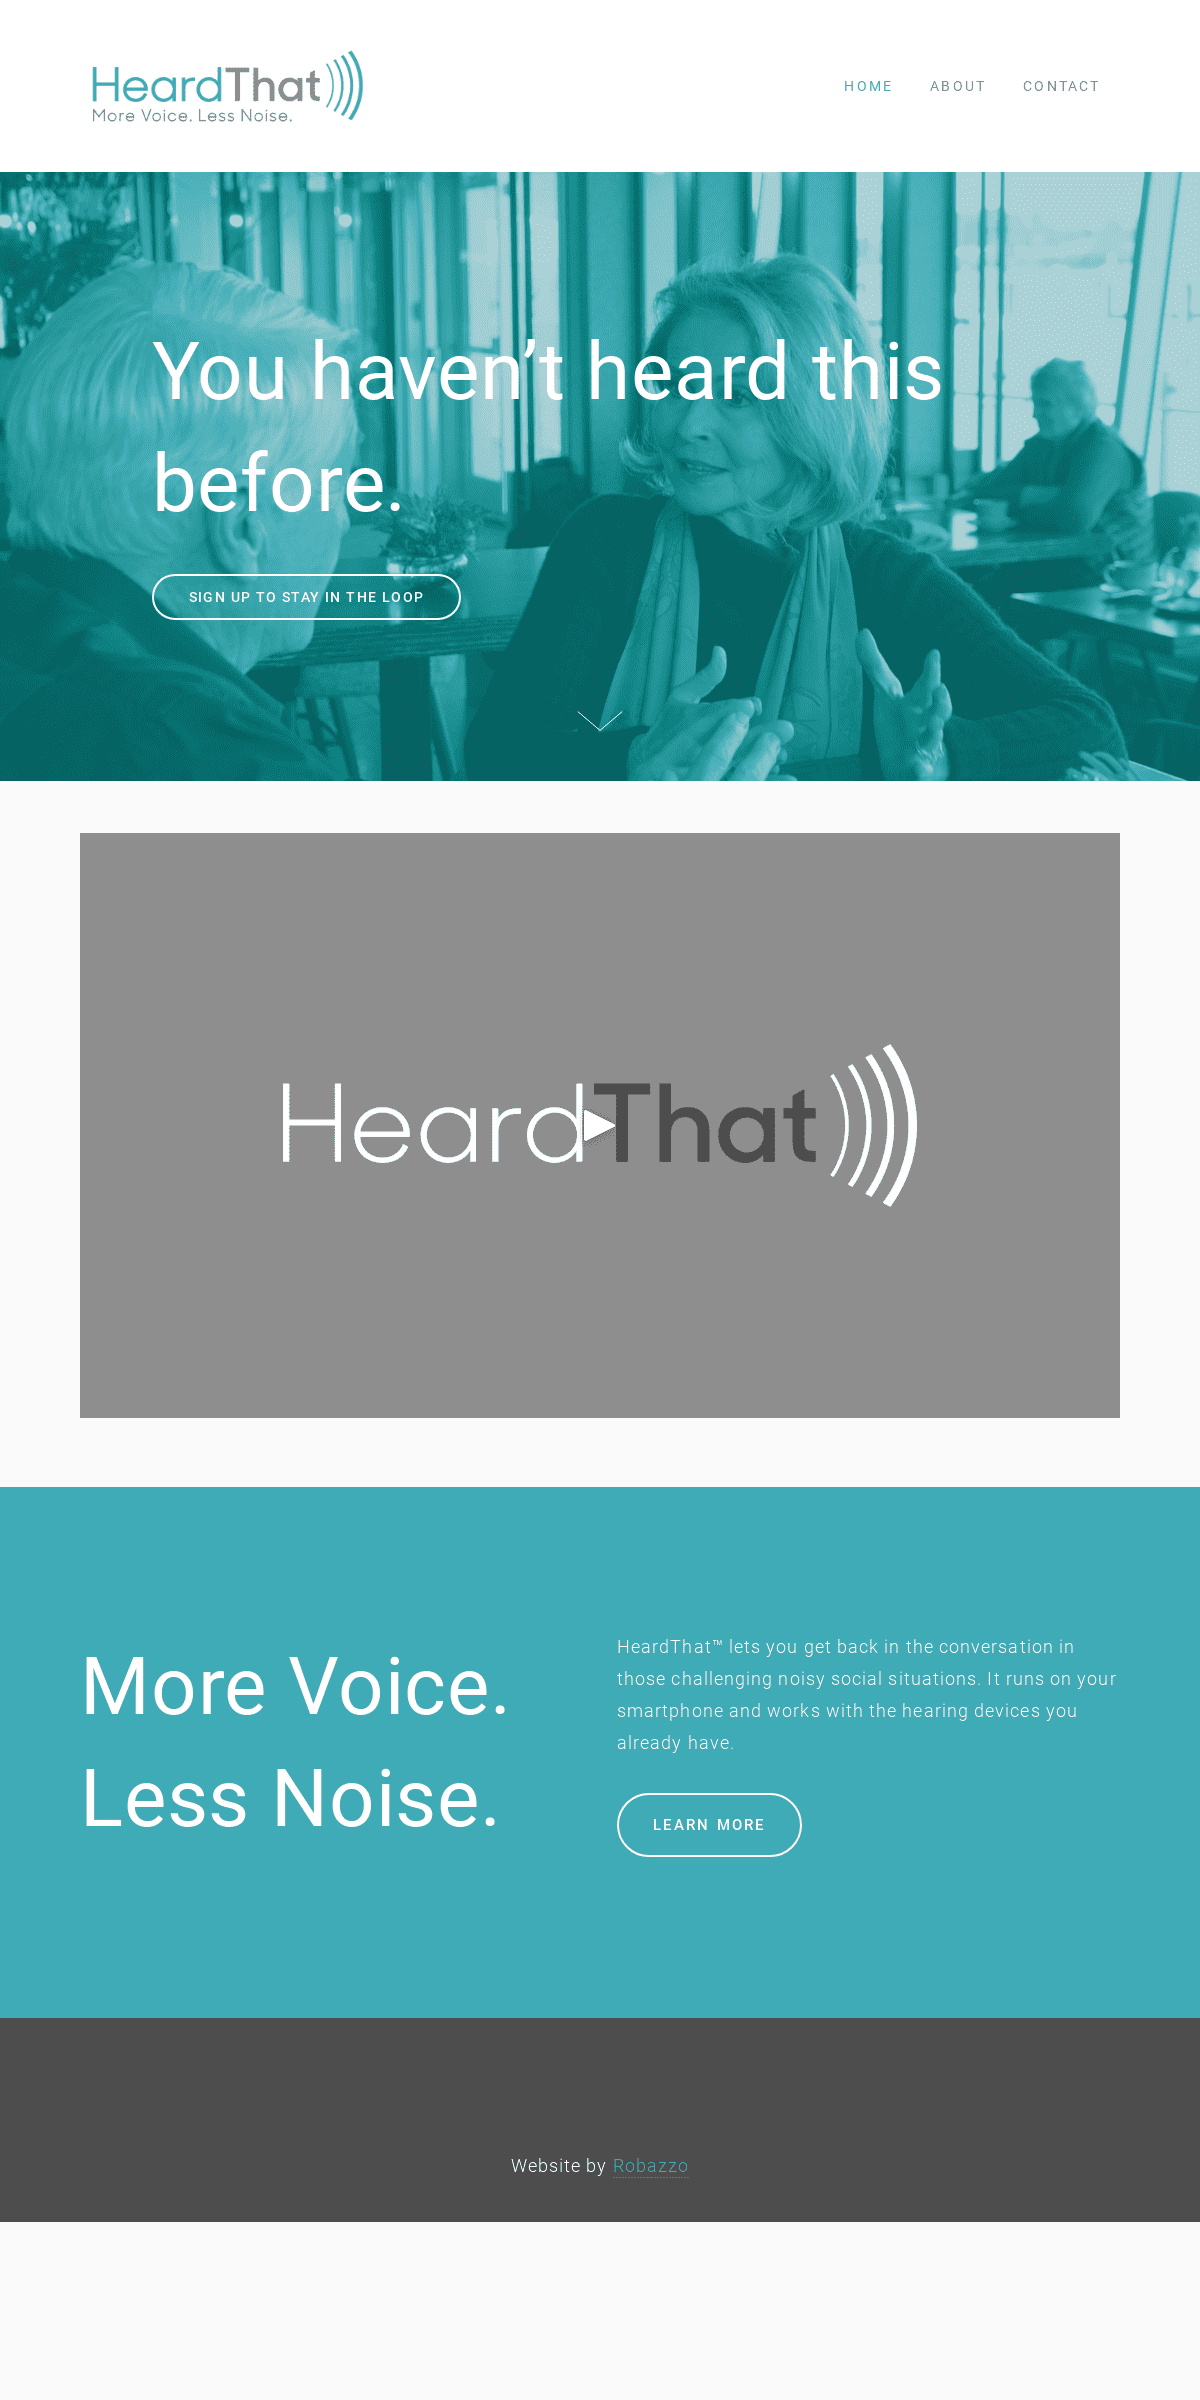 Hearing Assistive Technology - Smartphone App - HeardThat